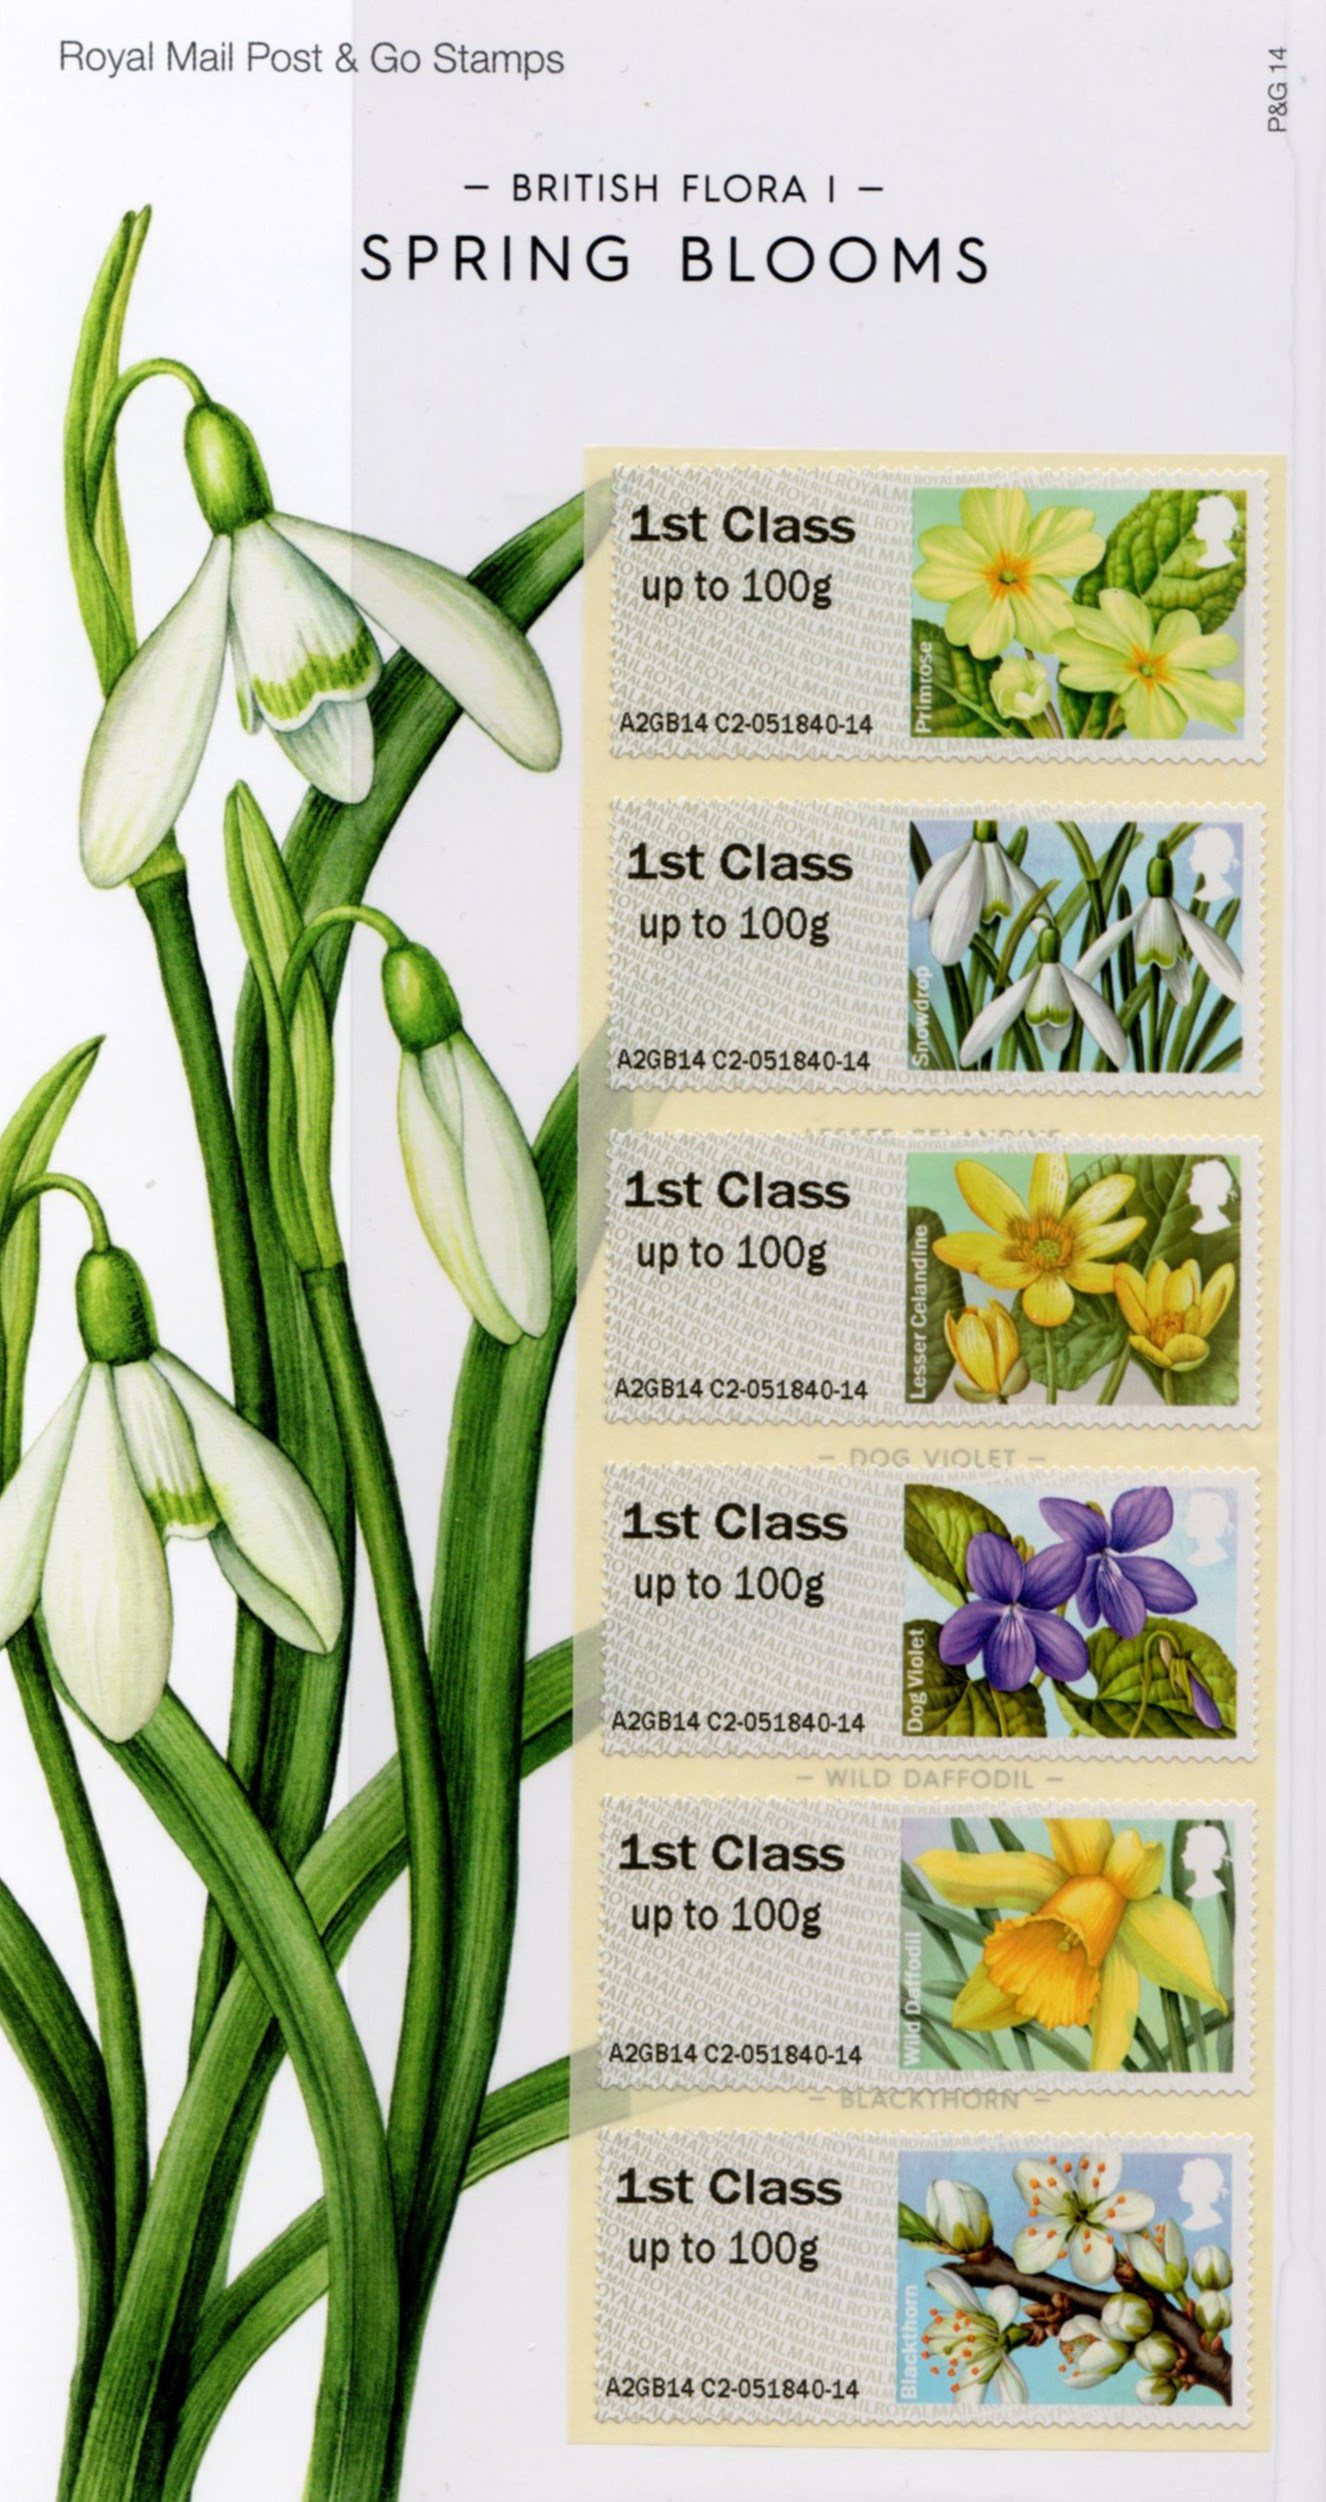 The stamp set of British spring flowers.